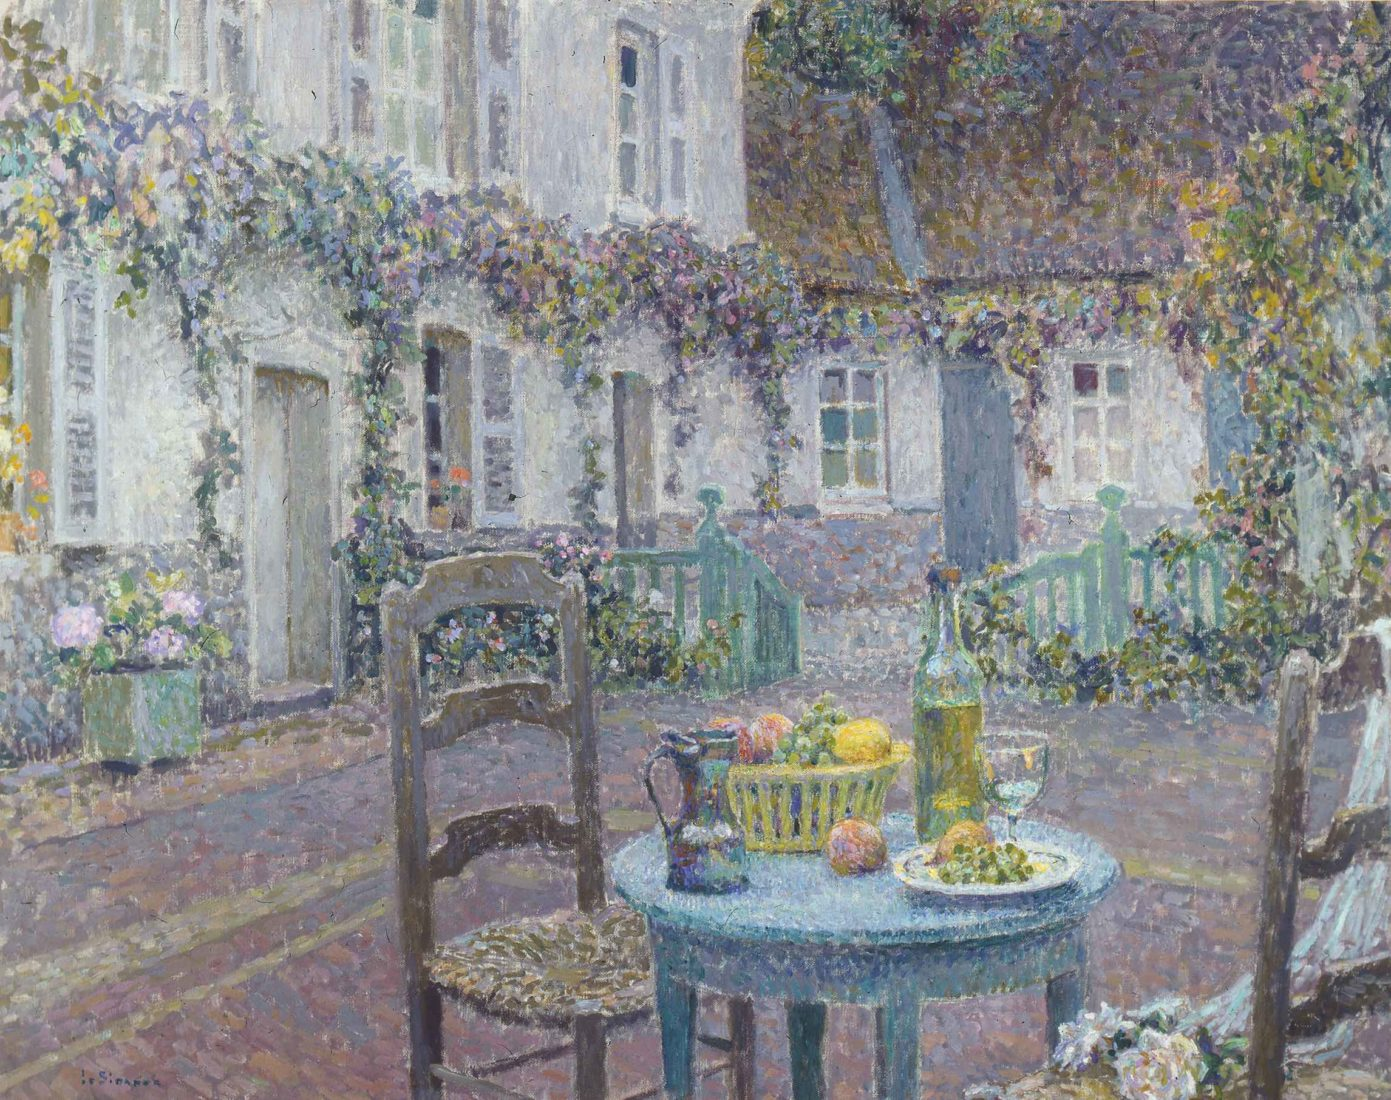 Henri Le Sidaner La Table bleue., Gerberoy